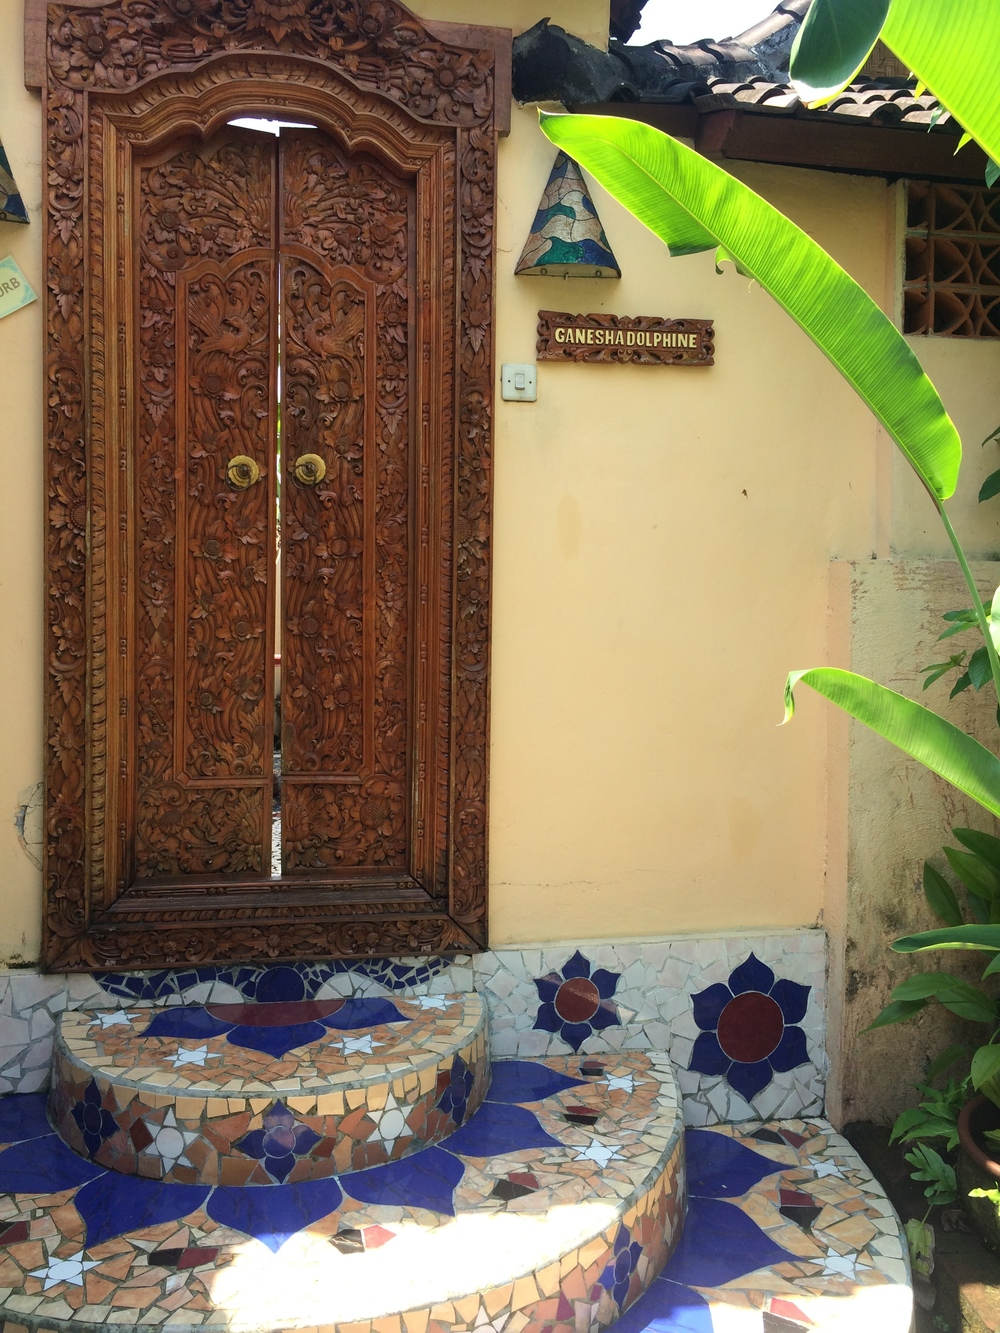 These Doors! Ganesha Dolphine...The entrance to my Room!